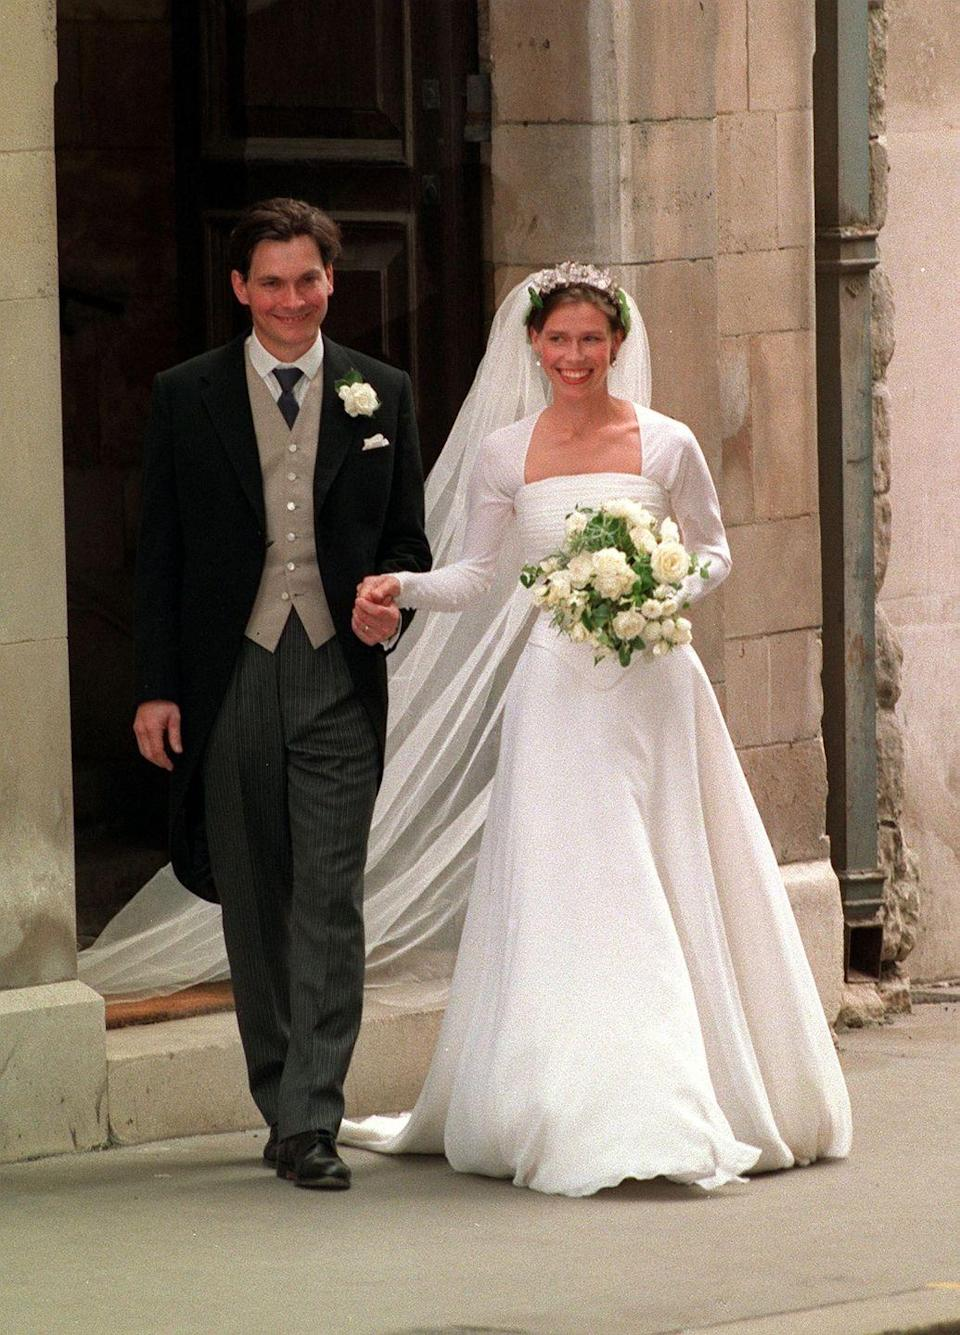 <p>Lady Sarah Armstrong Jones, Princess Margaret's daughter, donned a simple, feminine dress designed by British designer Jasper Conran. Conran's website notes that the dress was made of silk crepe chiffon with an underskirt of light and heavy satin organza layers, layered in silk crepe.</p>